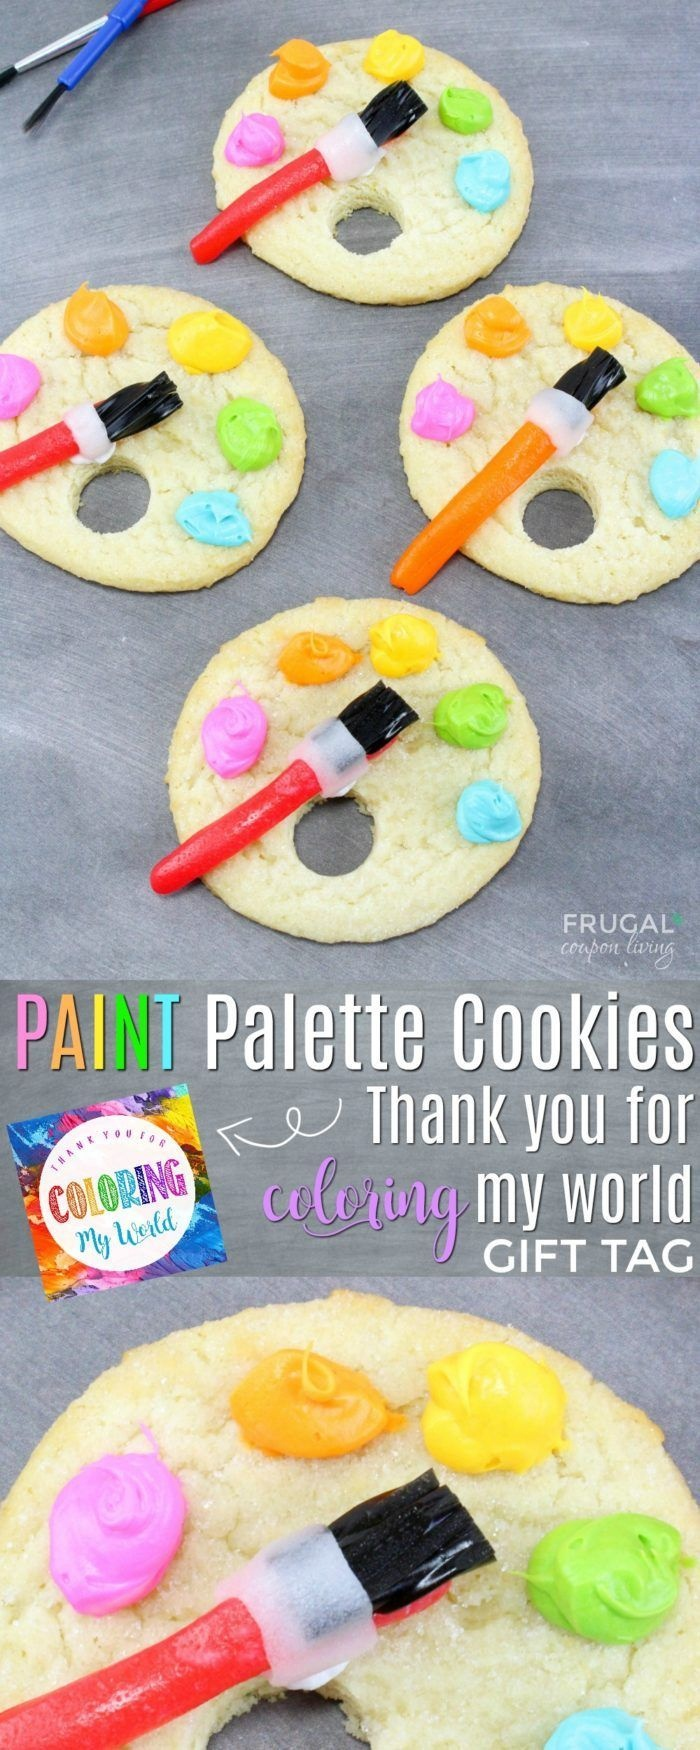 Artist Paint Palette Cookies Plus Bonus Printable Gift Tag | Recipe - Free Printable Paint Palette